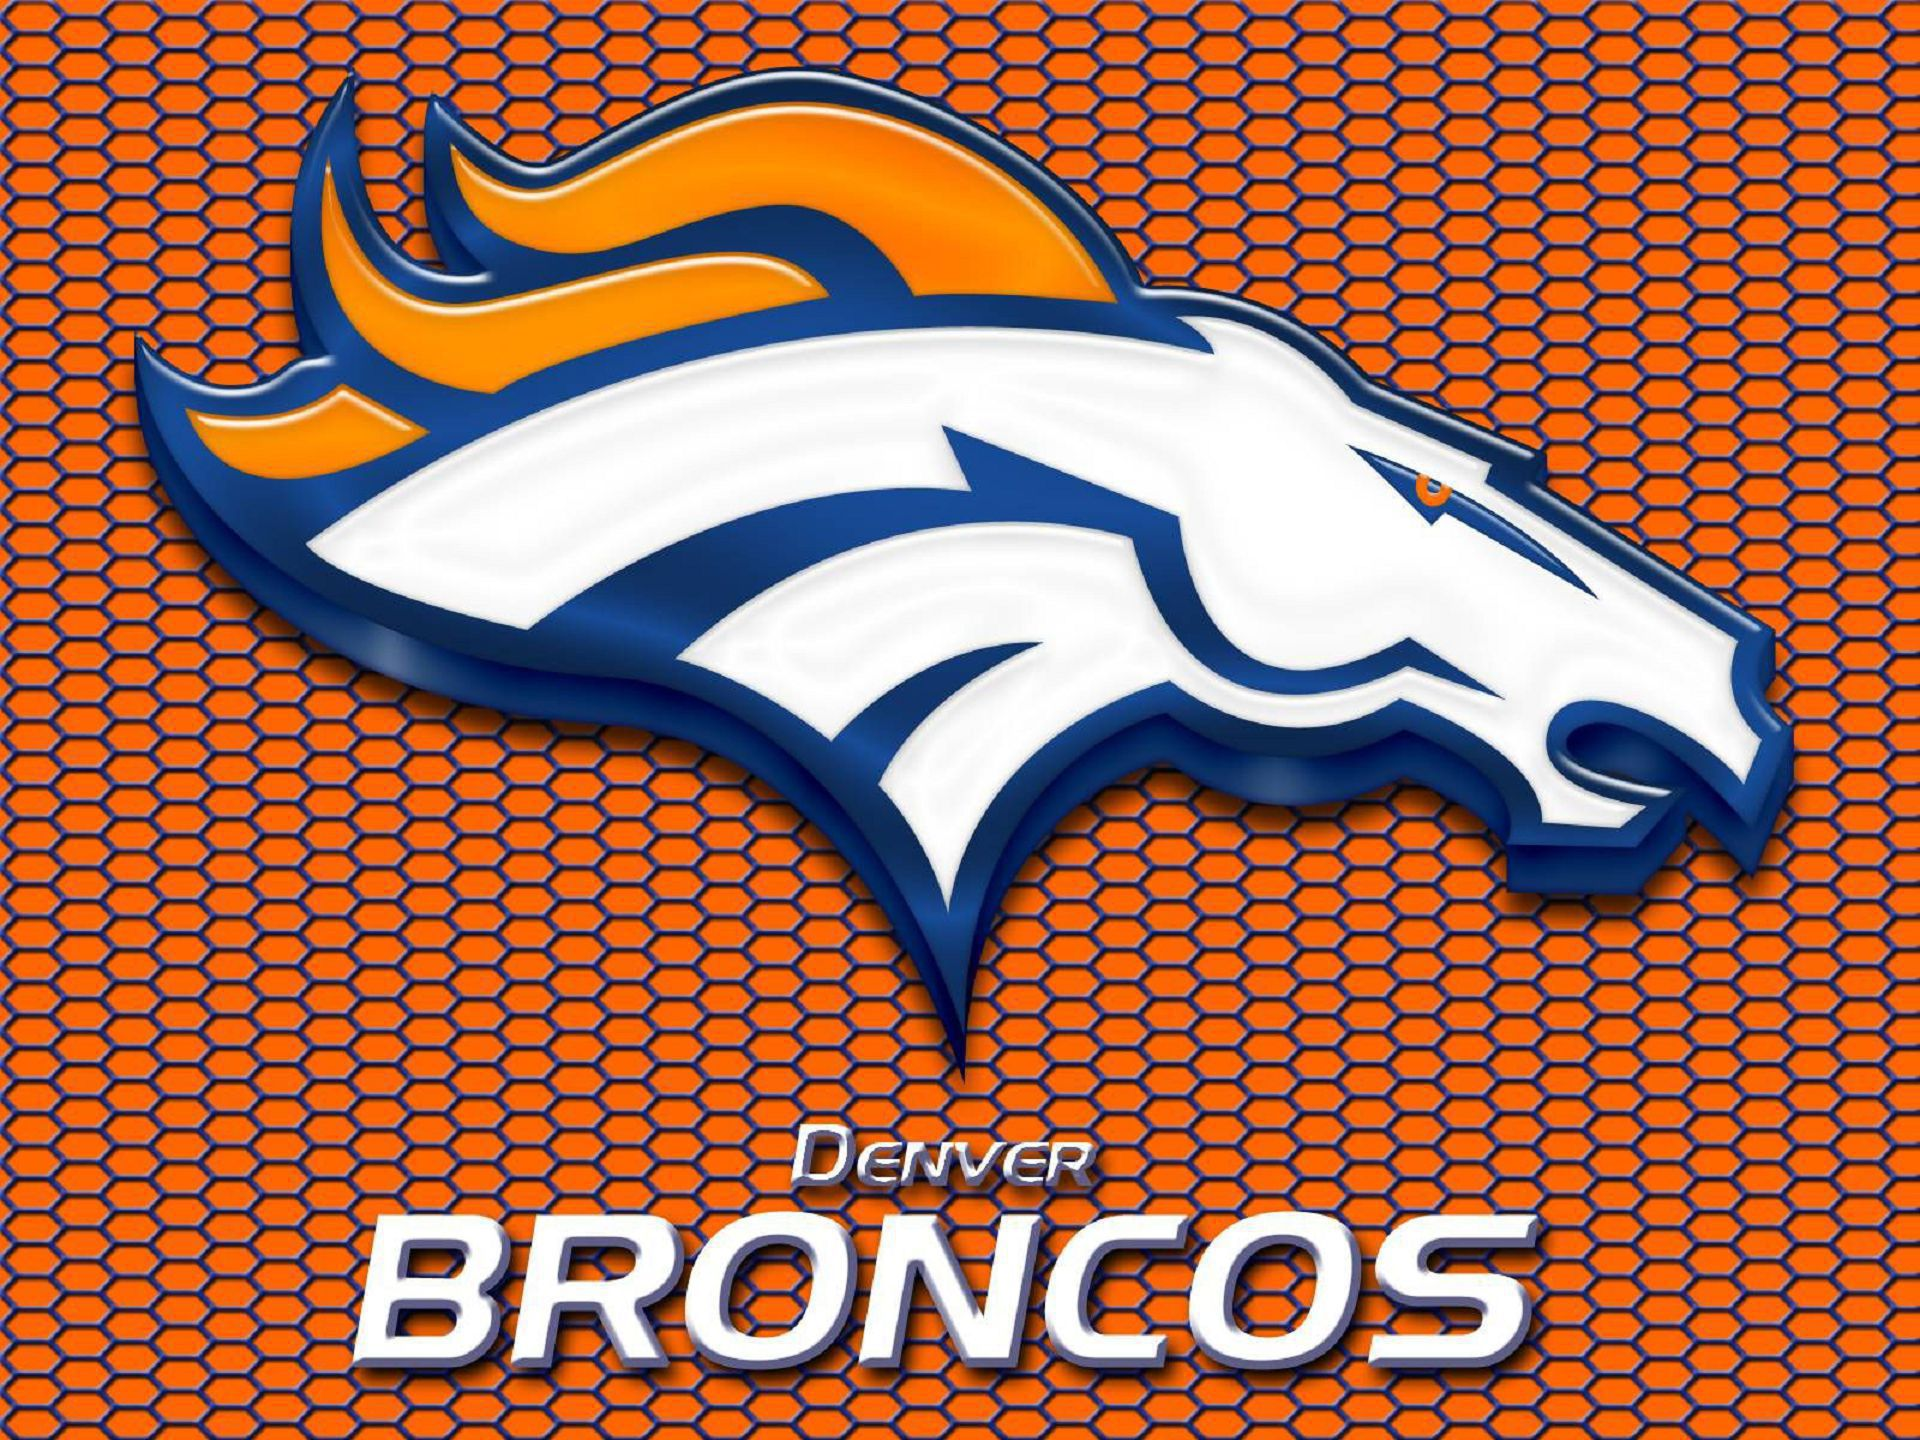 Denver Broncos Backgrounds Wallpaper Cave With Cool Broncos Backgrounds HD